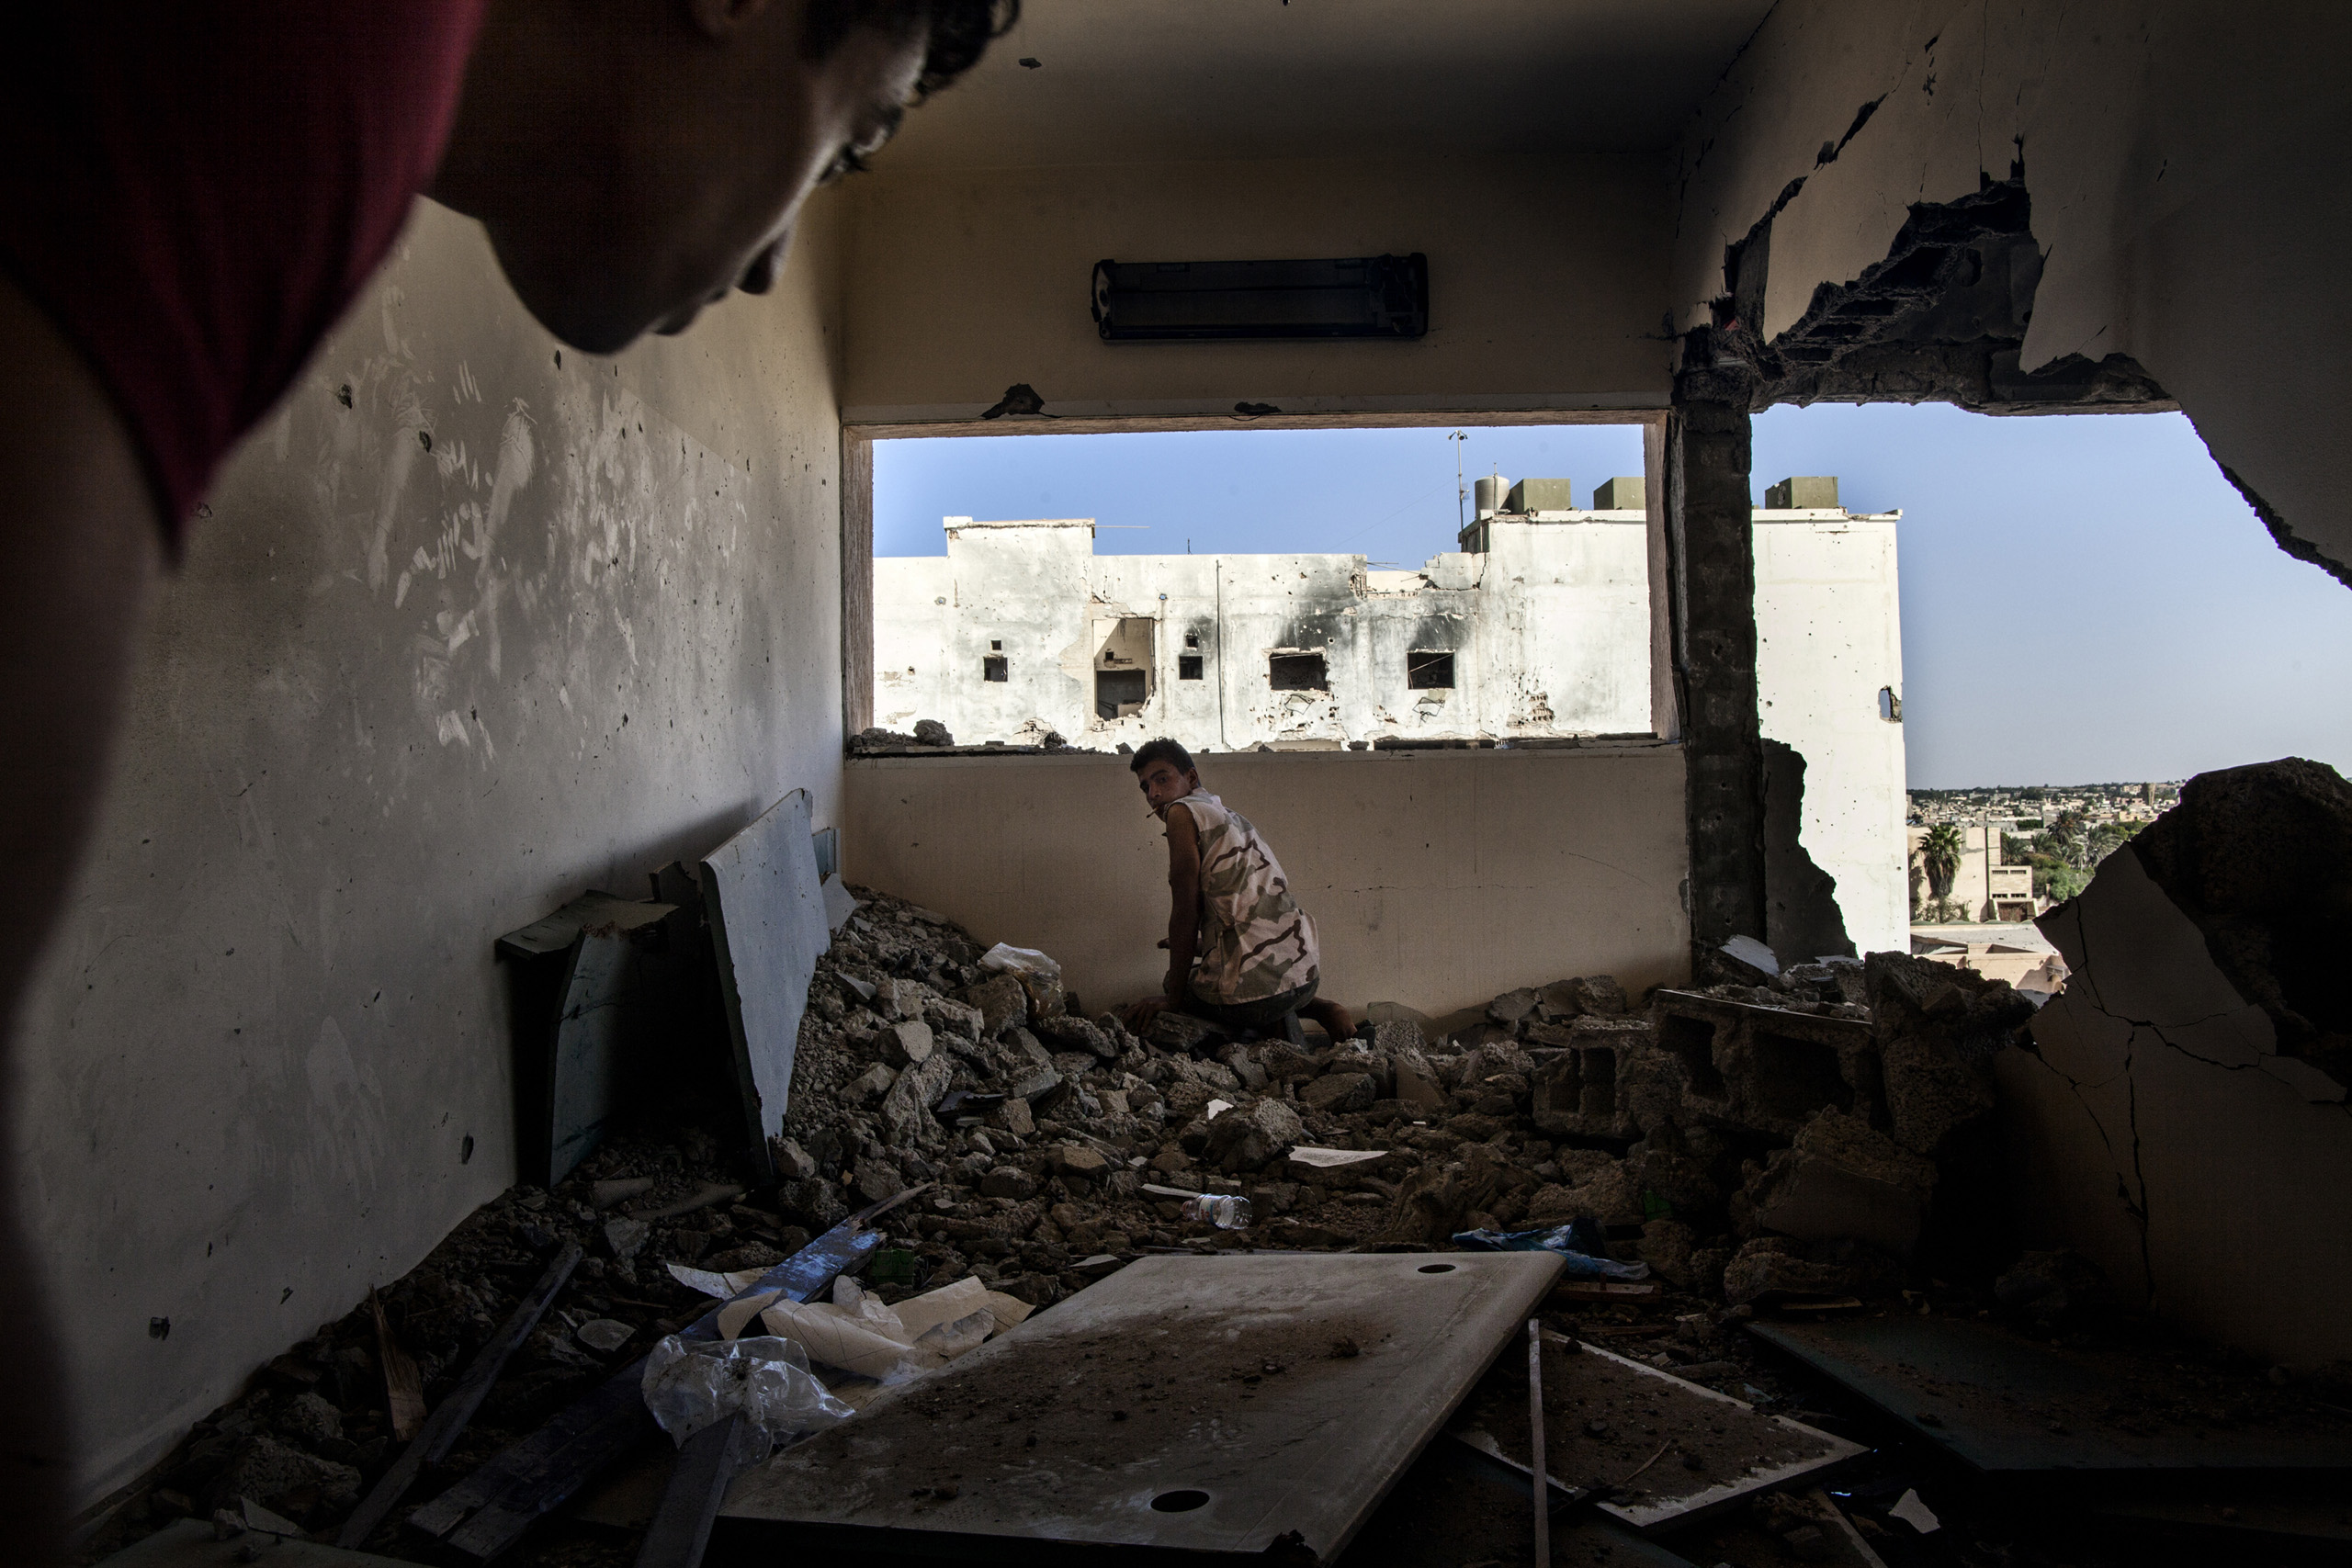 Fighters of the Libyan forces affiliated with the Tripoli government try to spot ISIS positions from a destroyed building close to the frontline in District 3, Sirte, the last Libyan stronghold of Islamic State militants, Sept. 23, 2016.